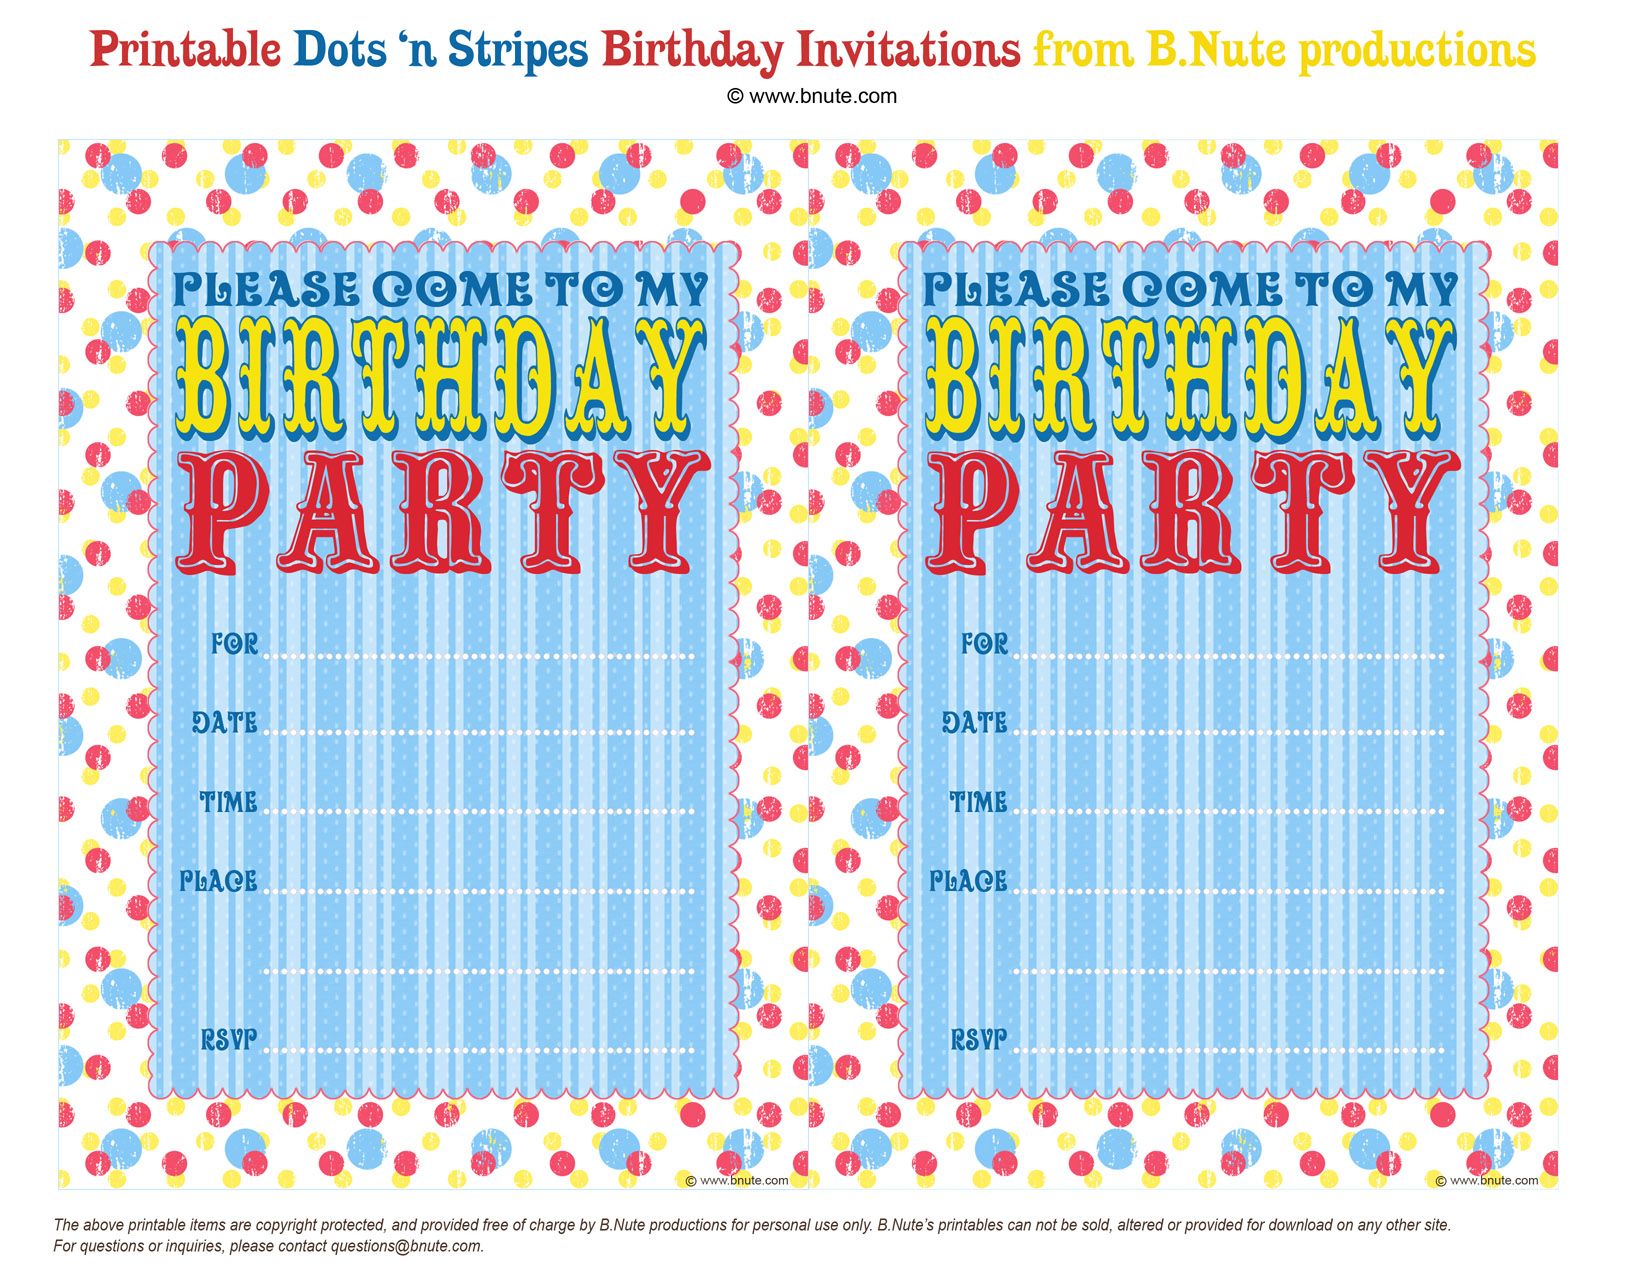 bnute productions free printable dots 'n stripes birthday party, invitation samples